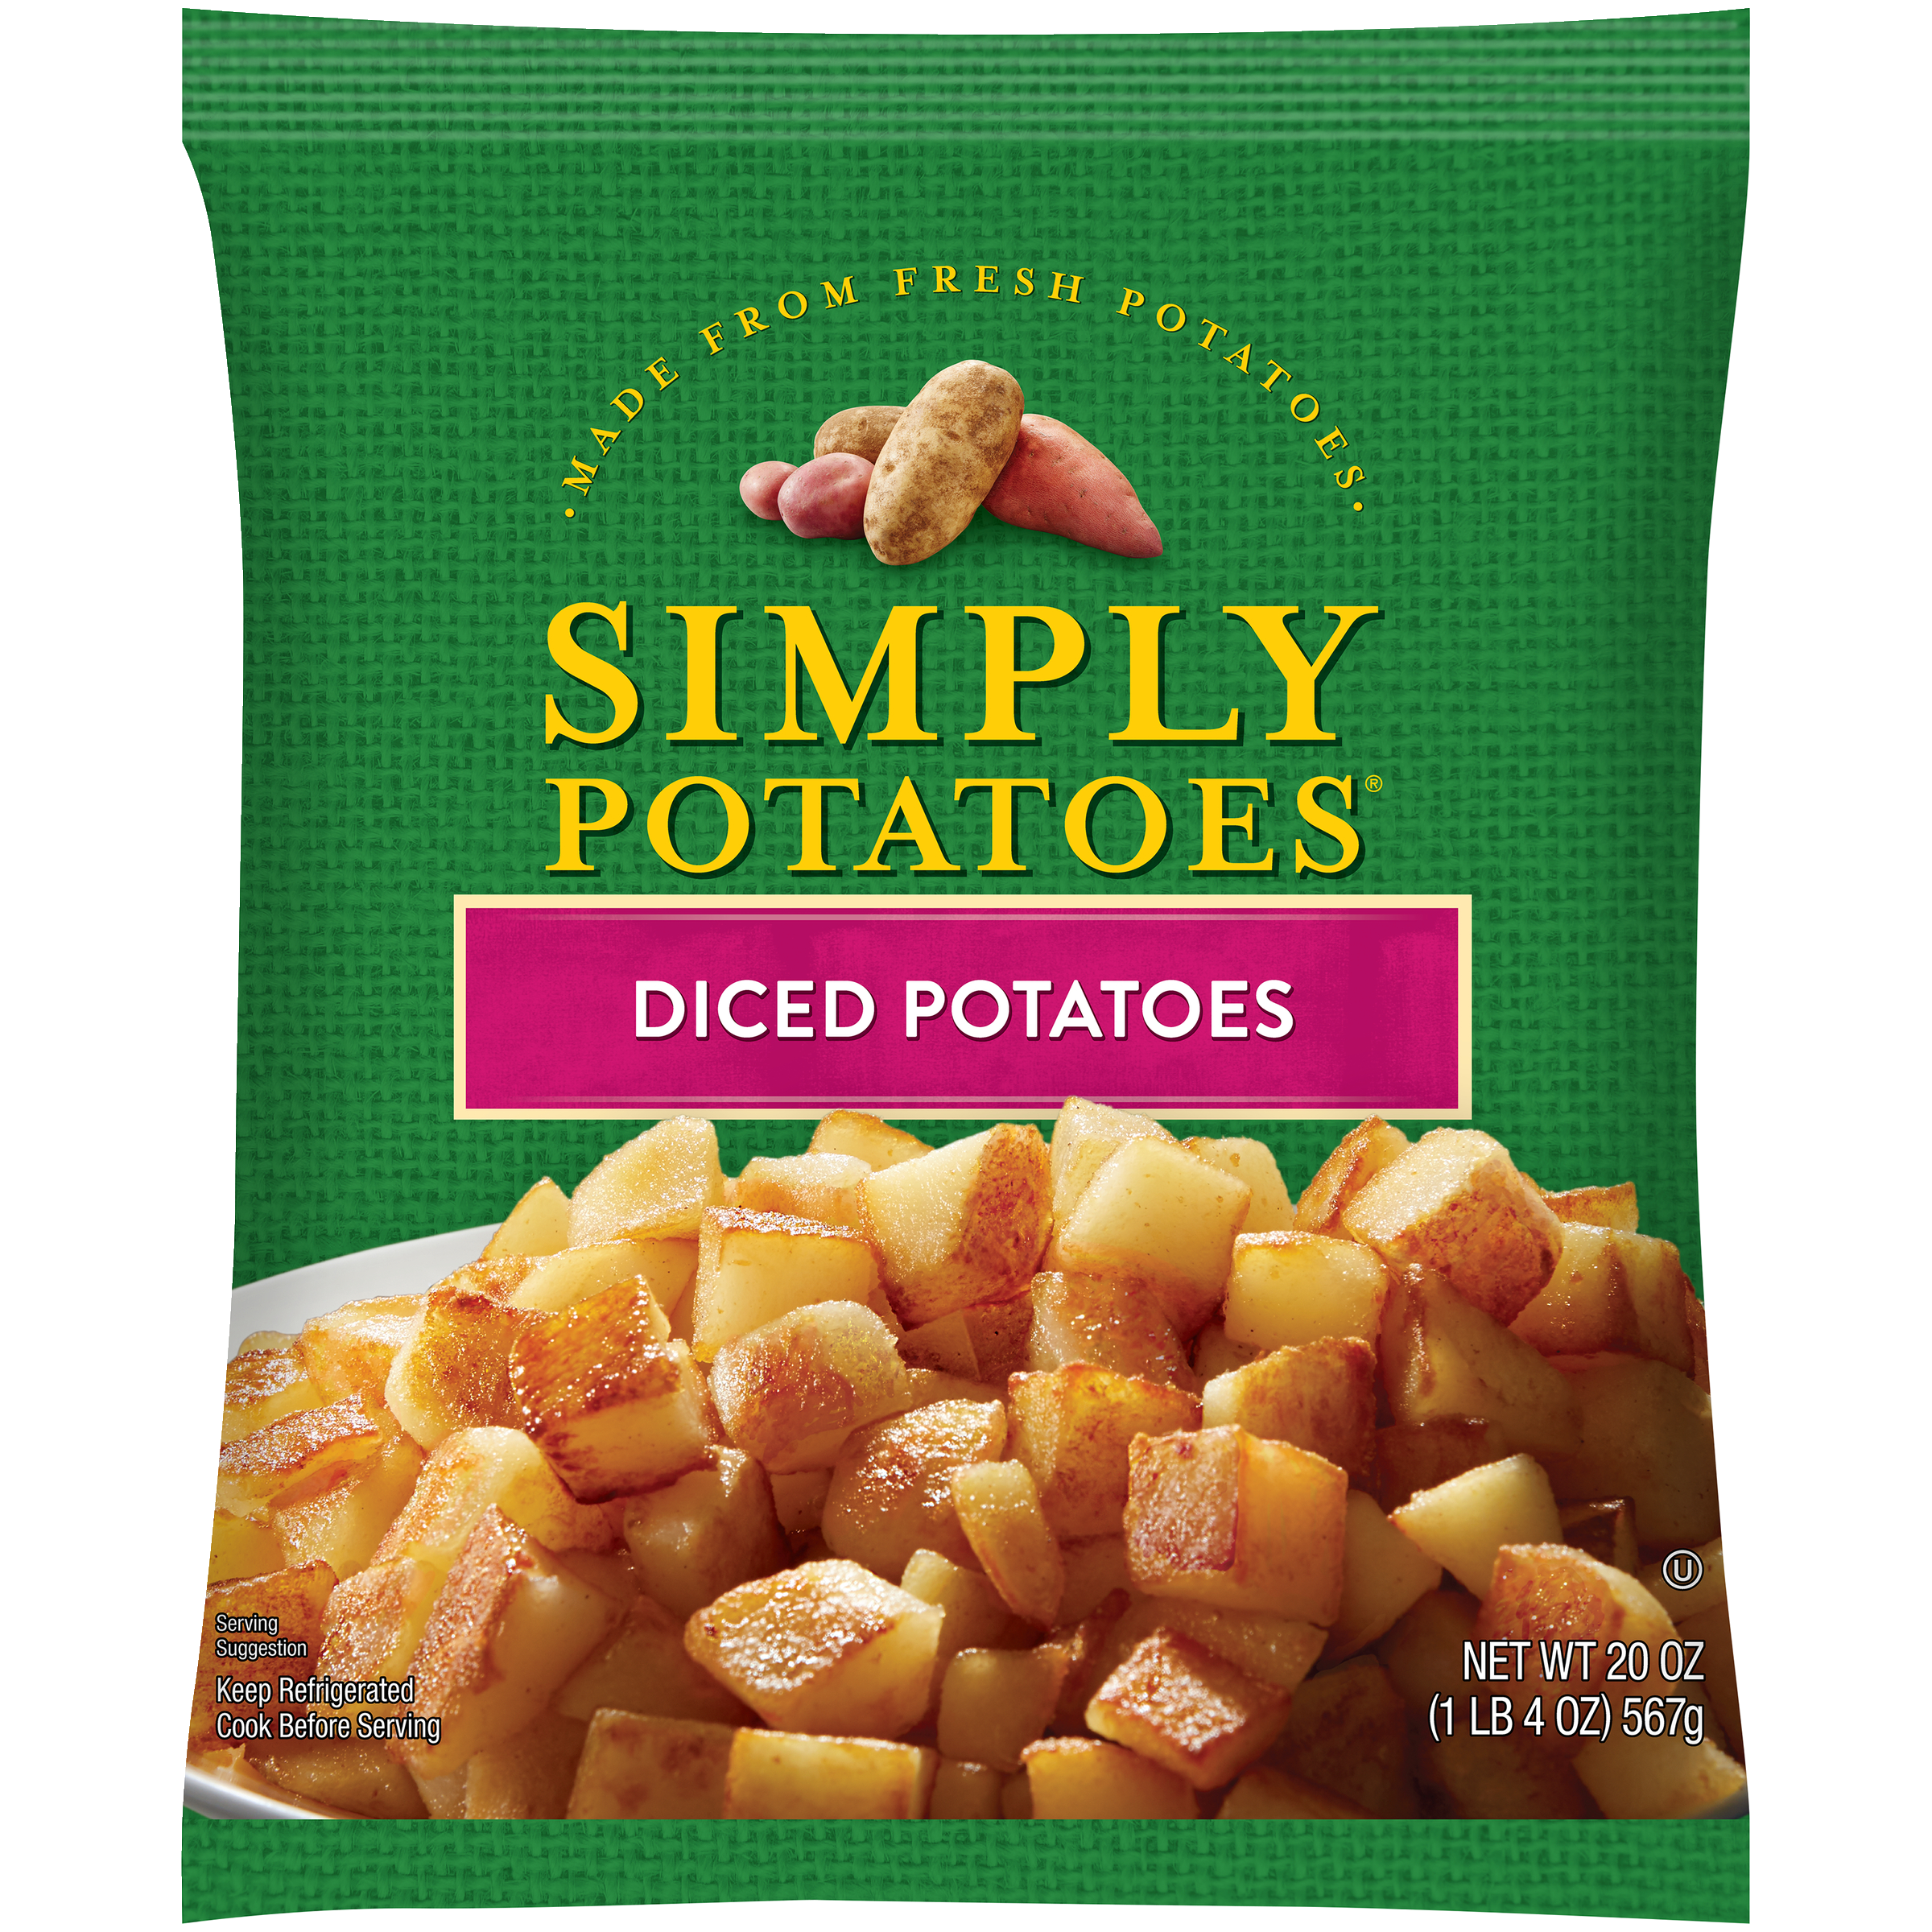 Simply Potatoes Diced Potatoes product image